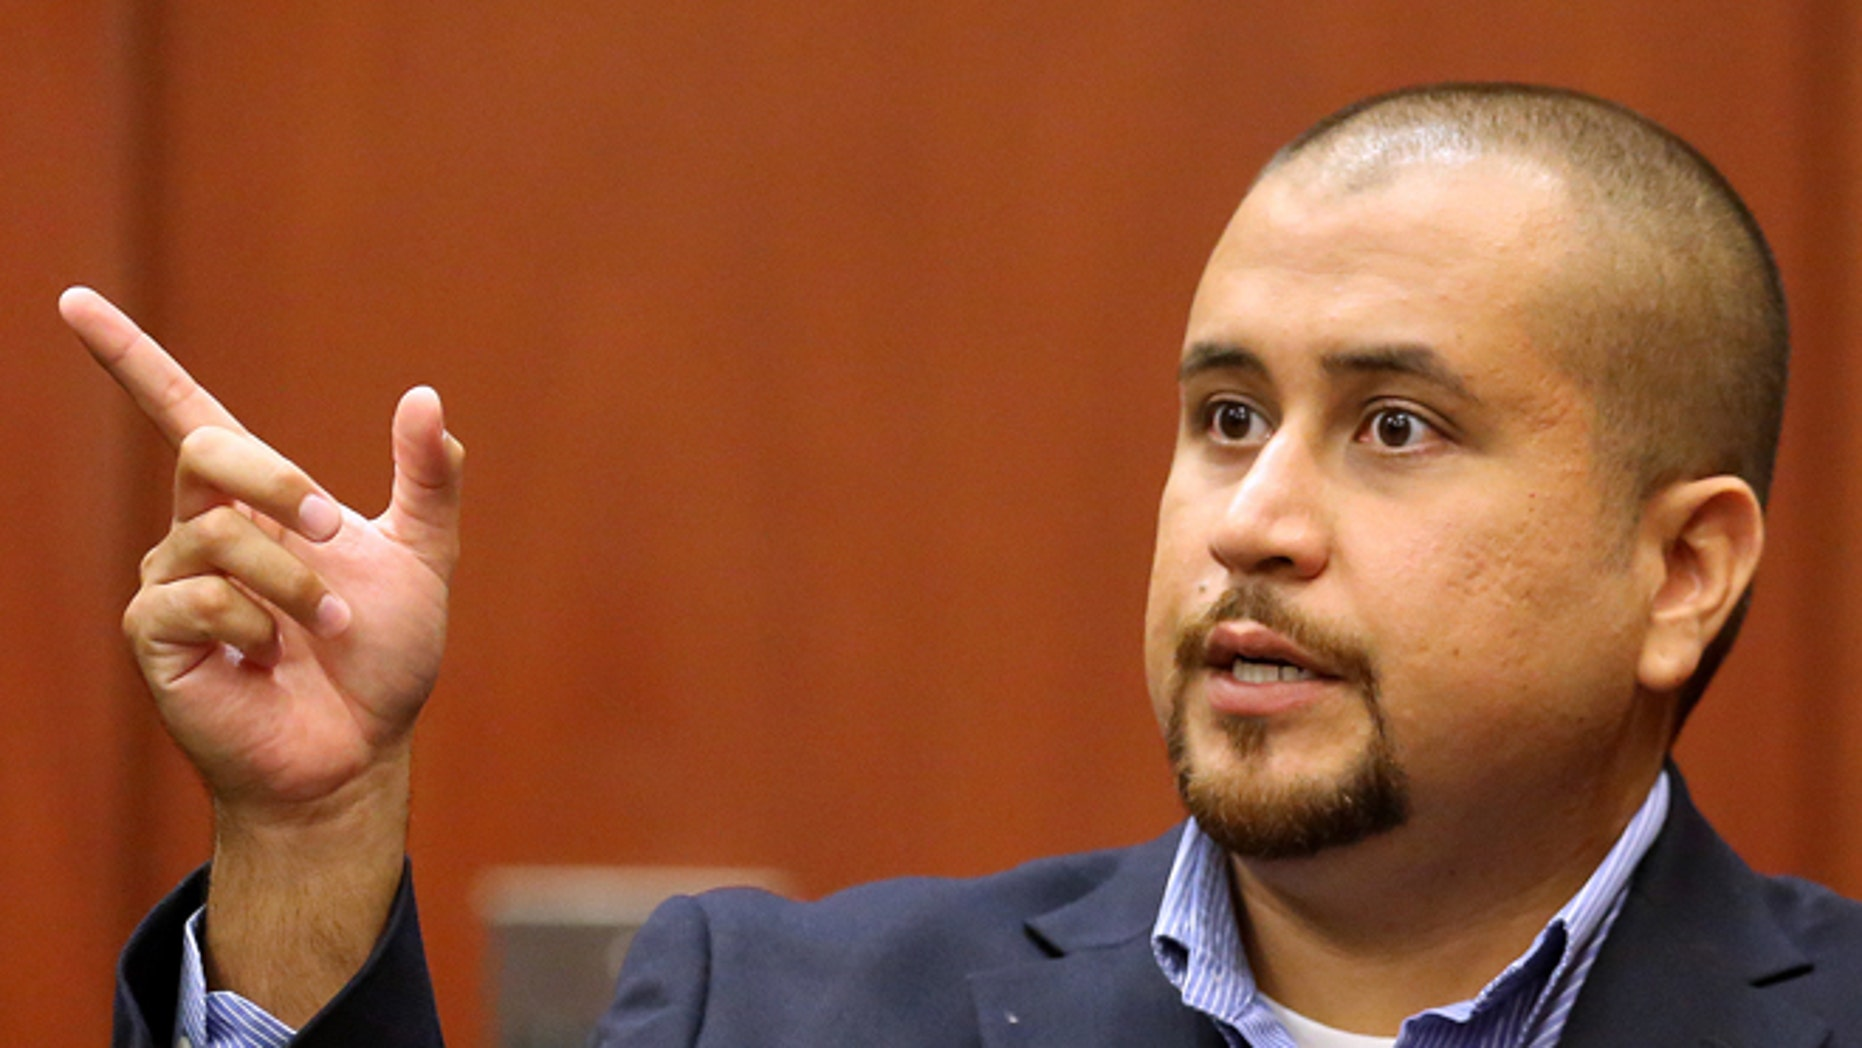 George Zimmerman gestures during his testimony at a hearing for accused shooter Matthew Apperson in September 2015.